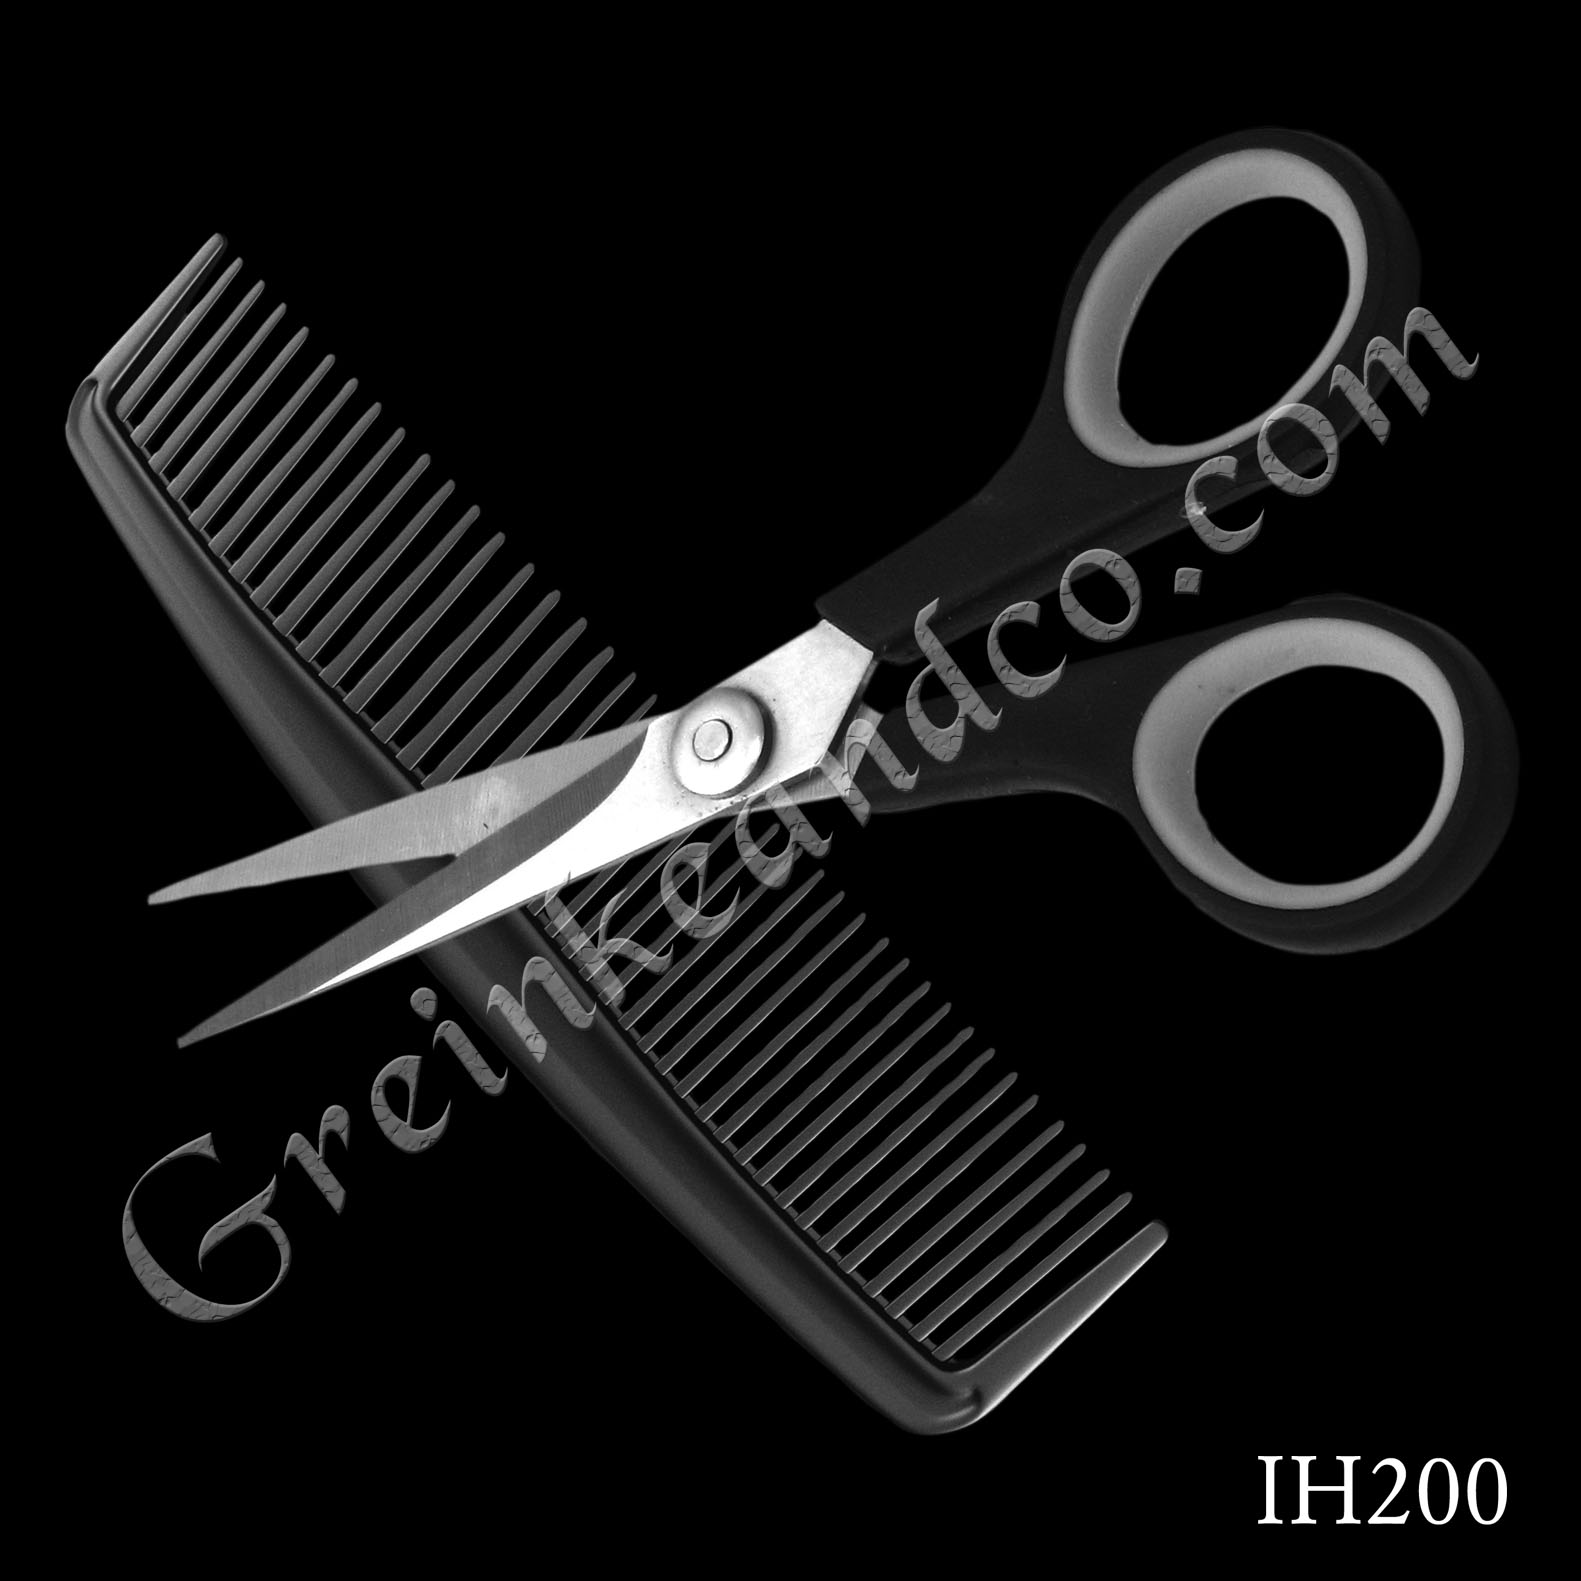 haircutting barber scissors and comb